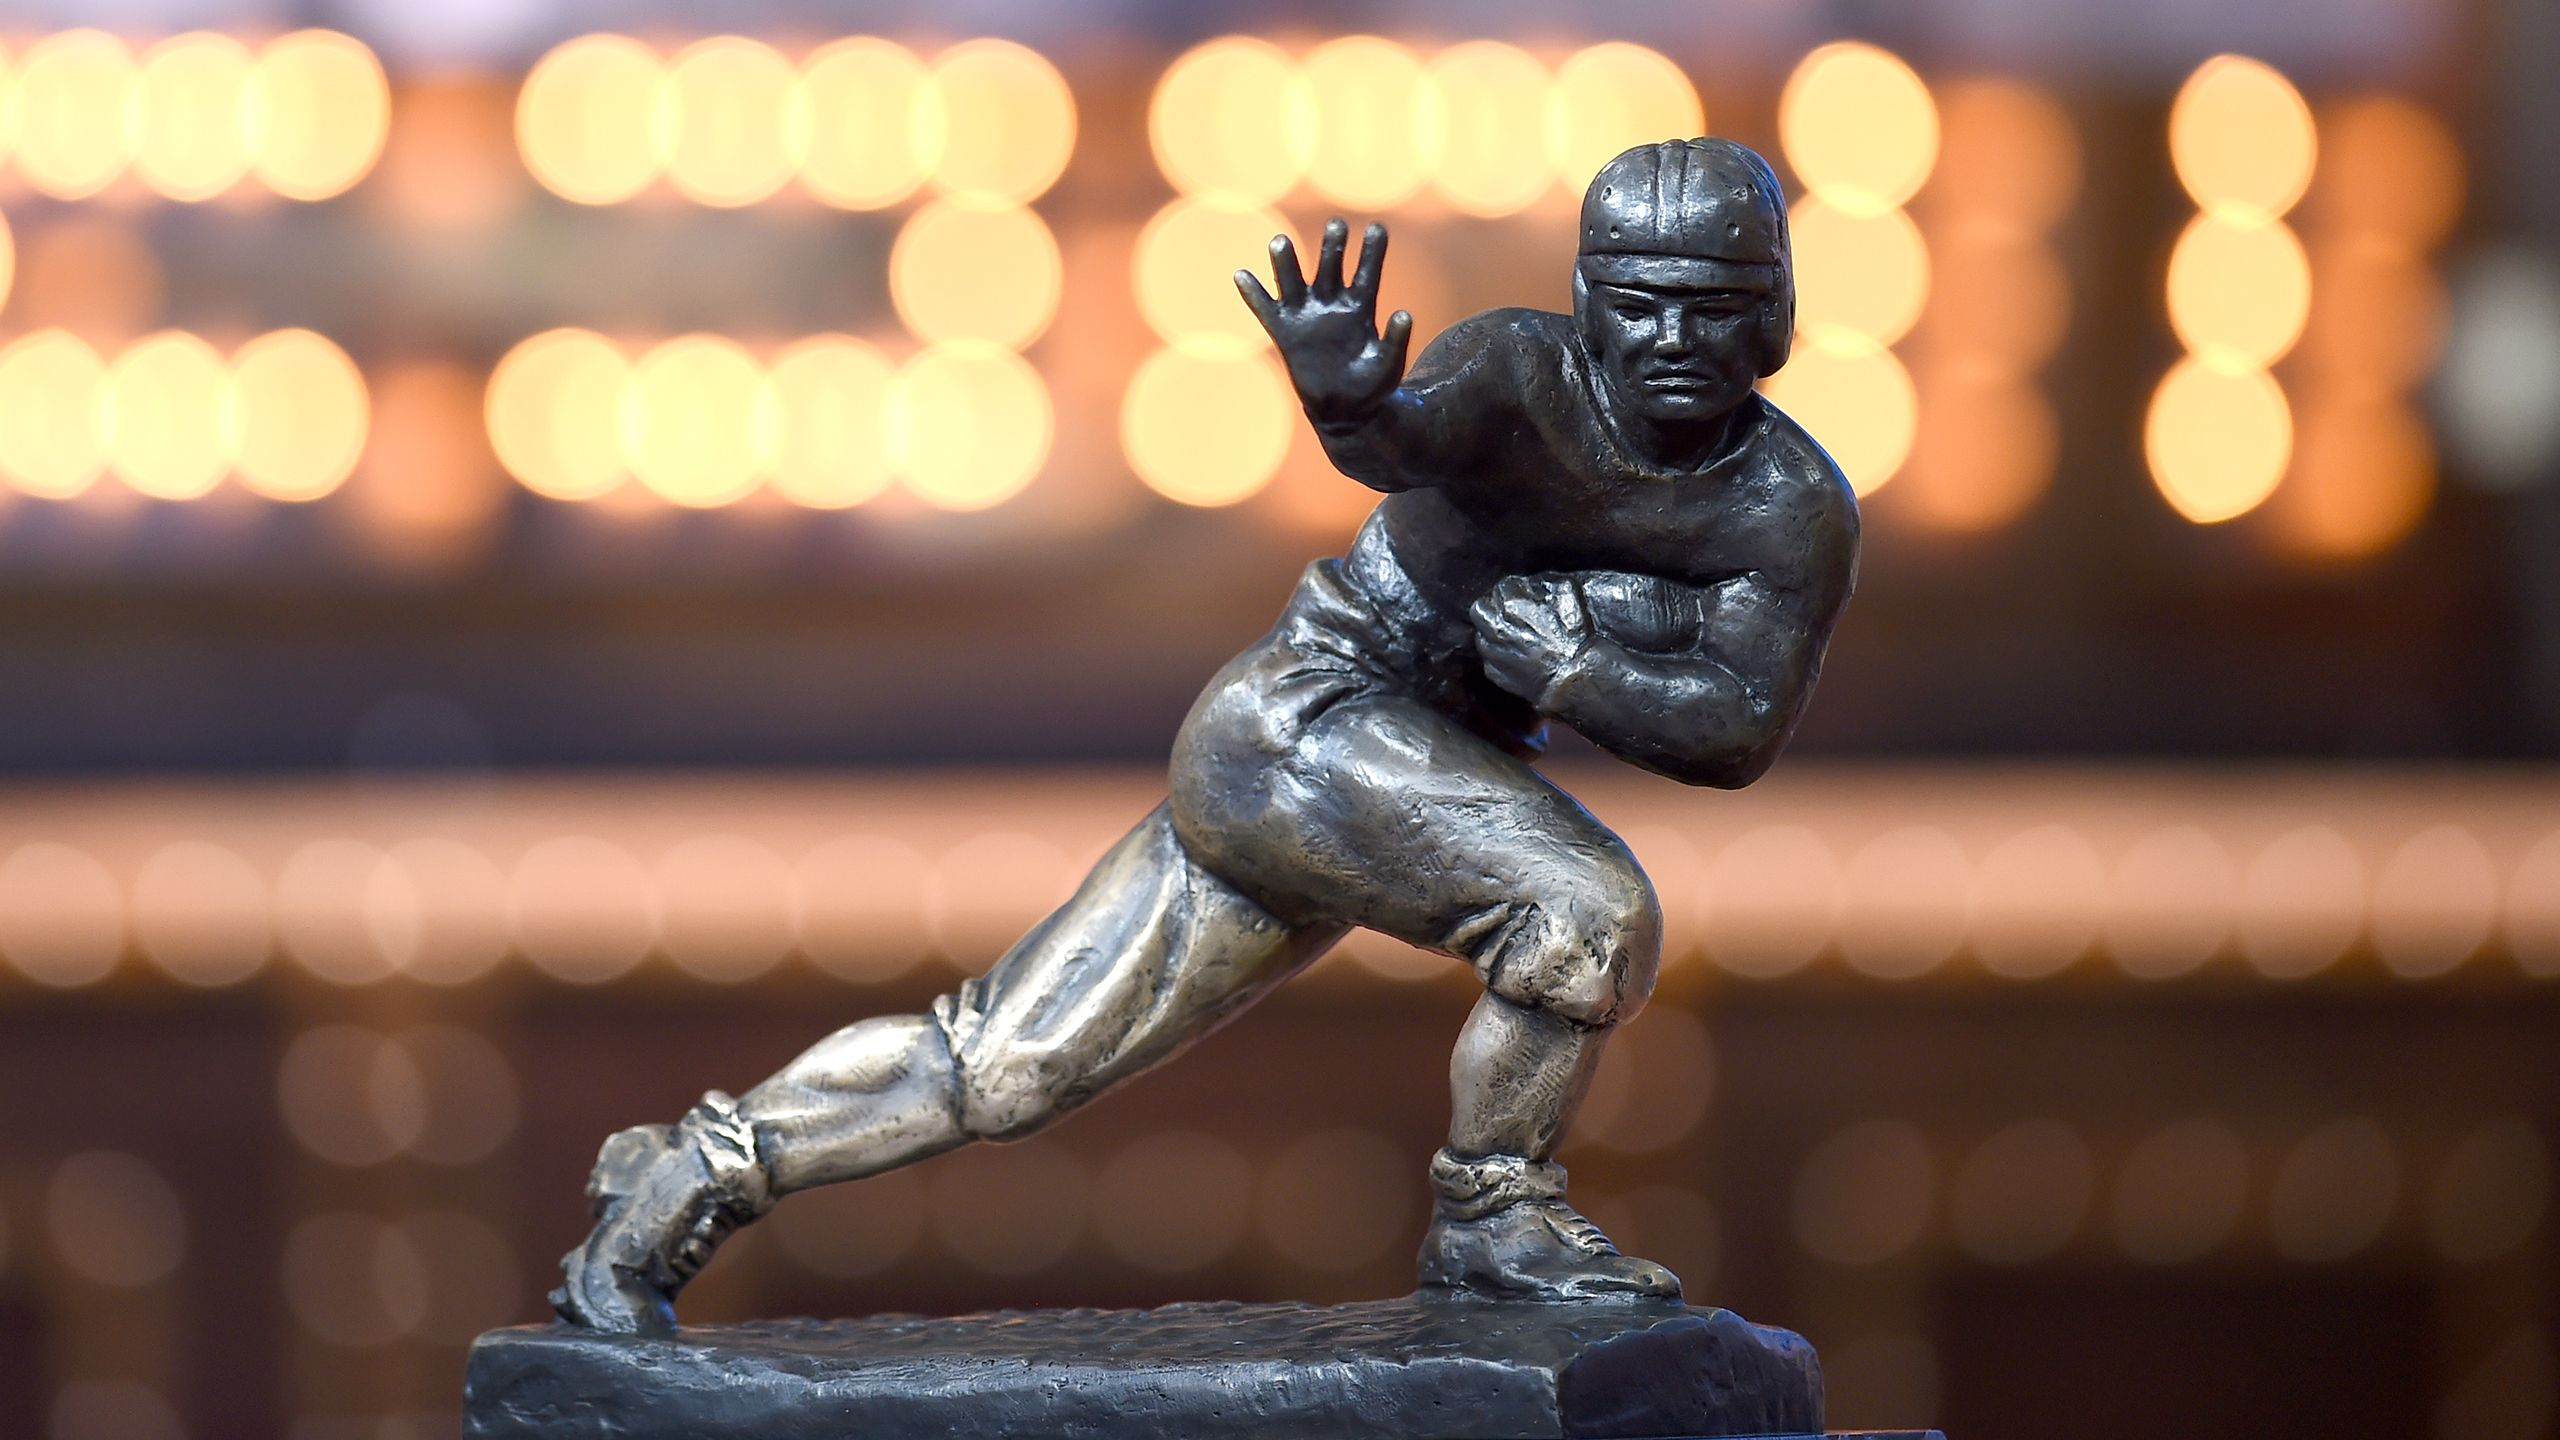 Heisman Trophy Presentation Presented by Nissan